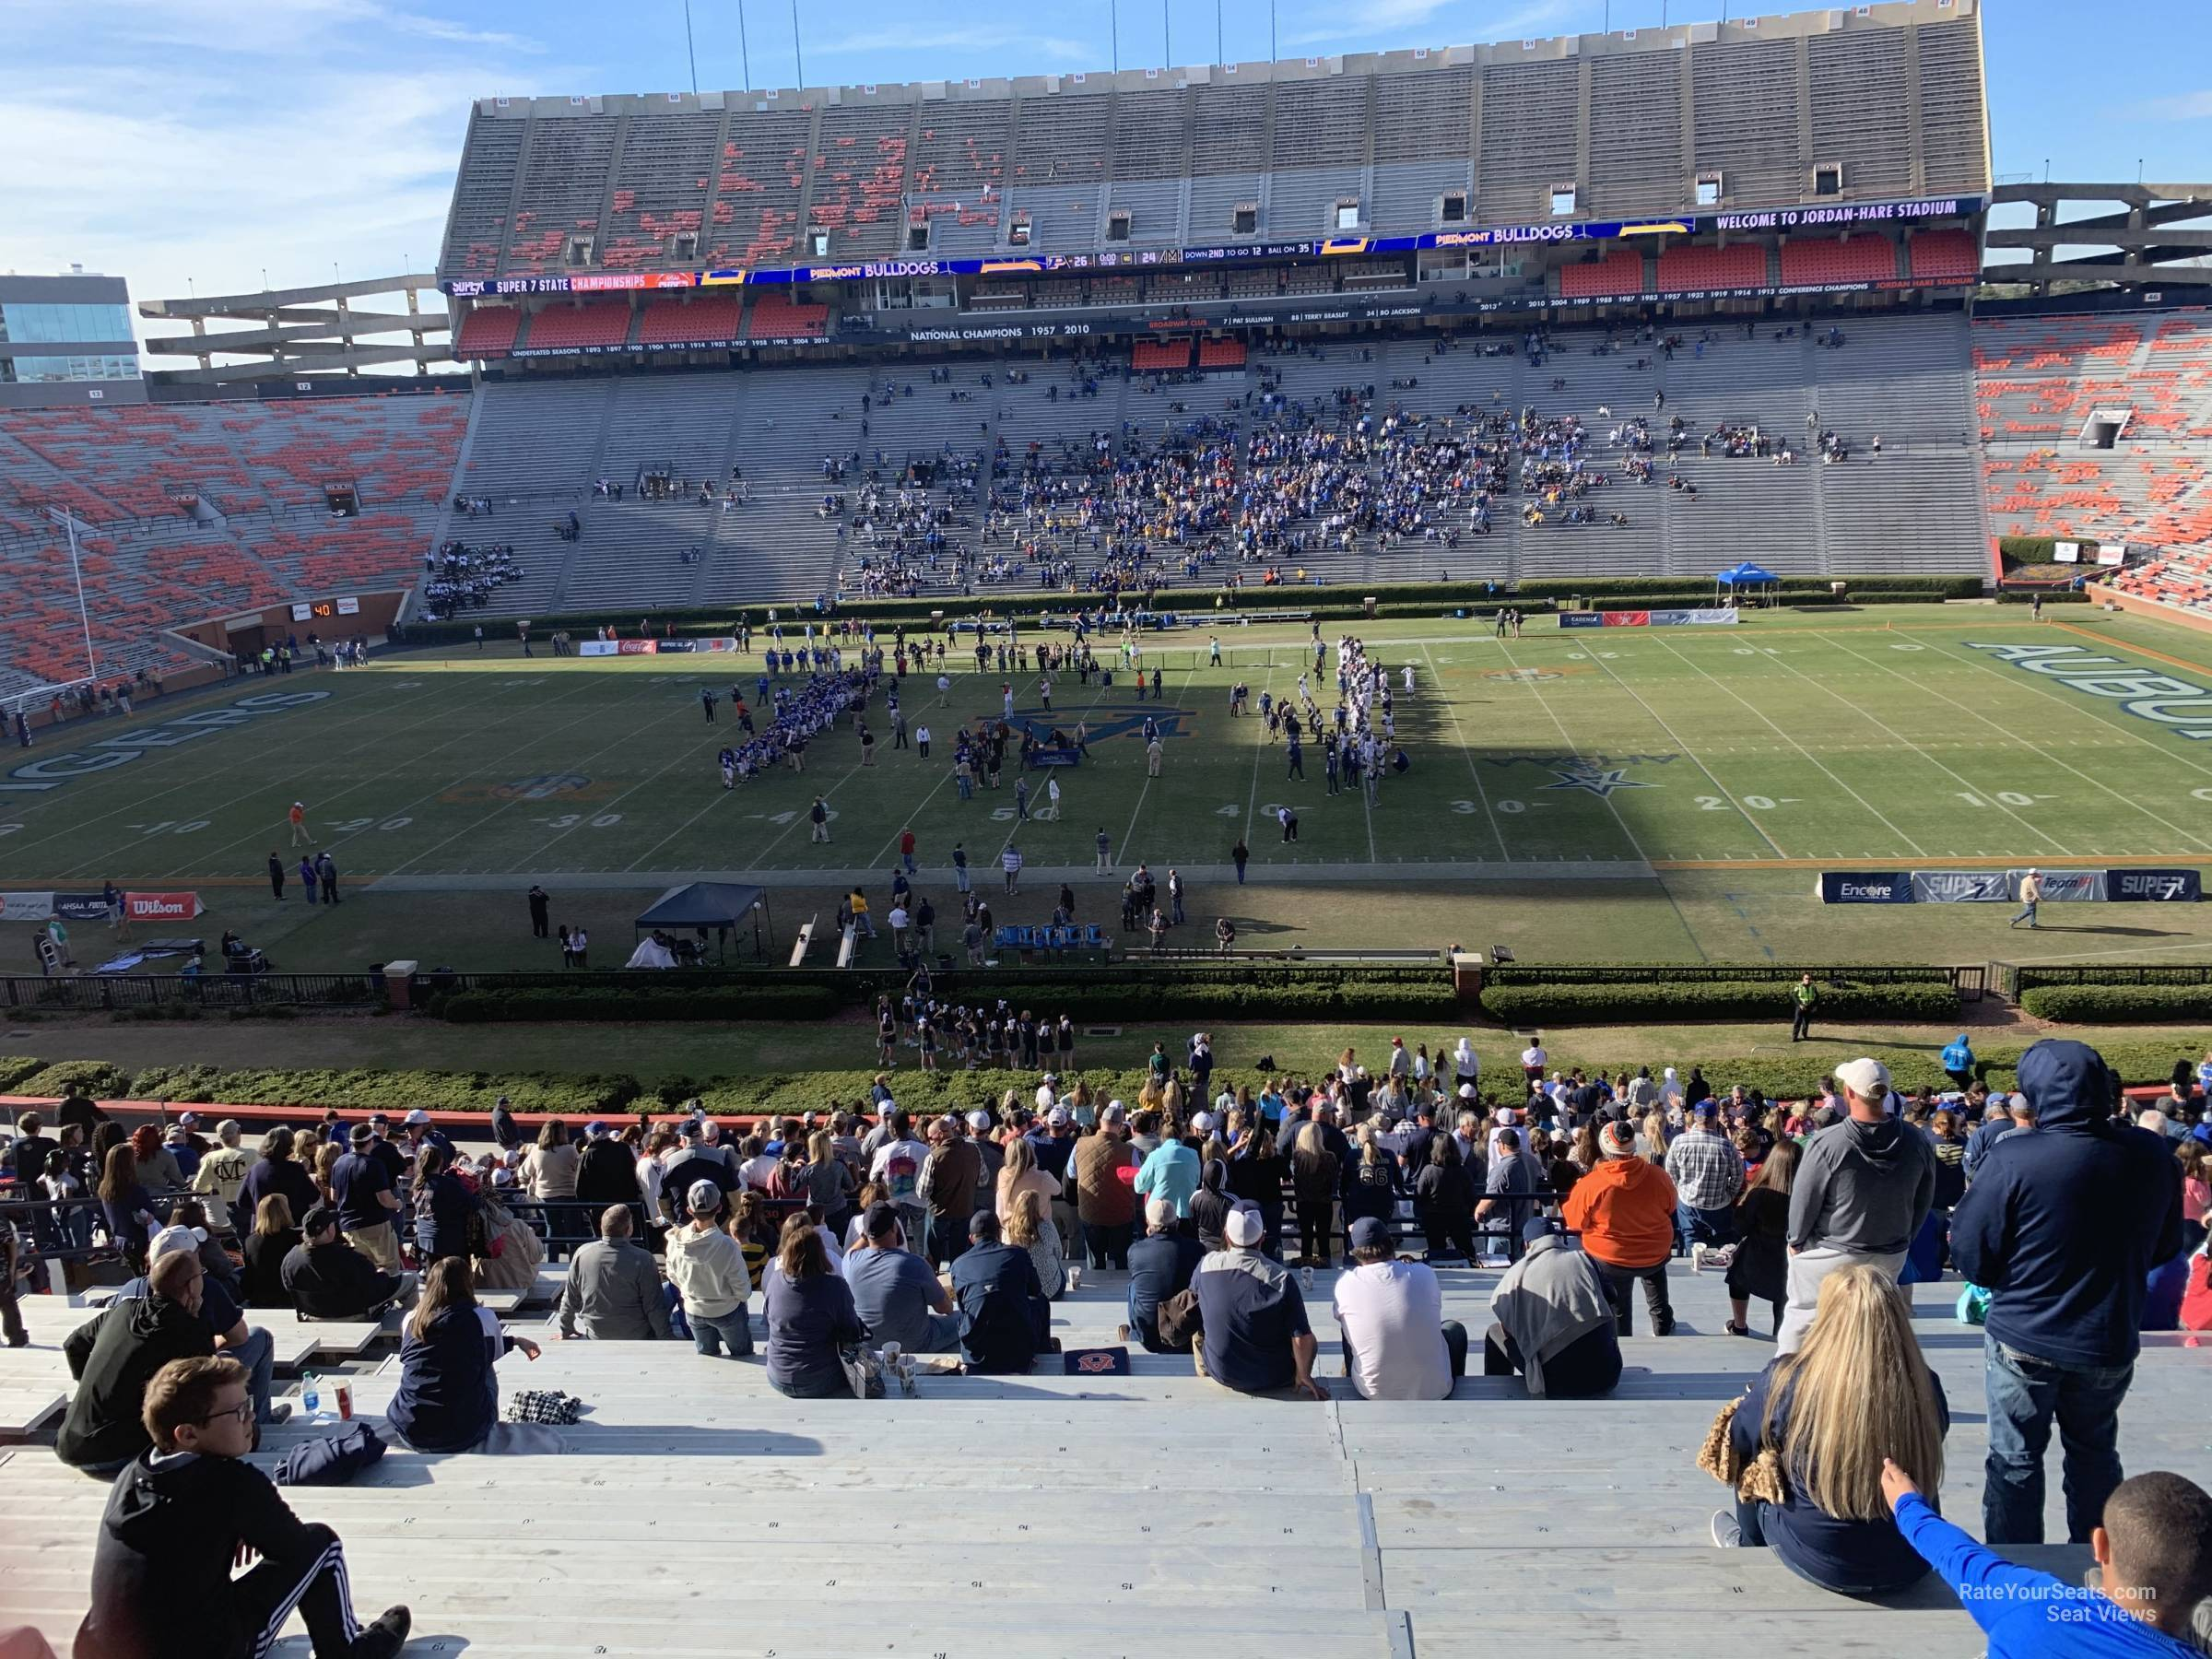 Section 30 seat view